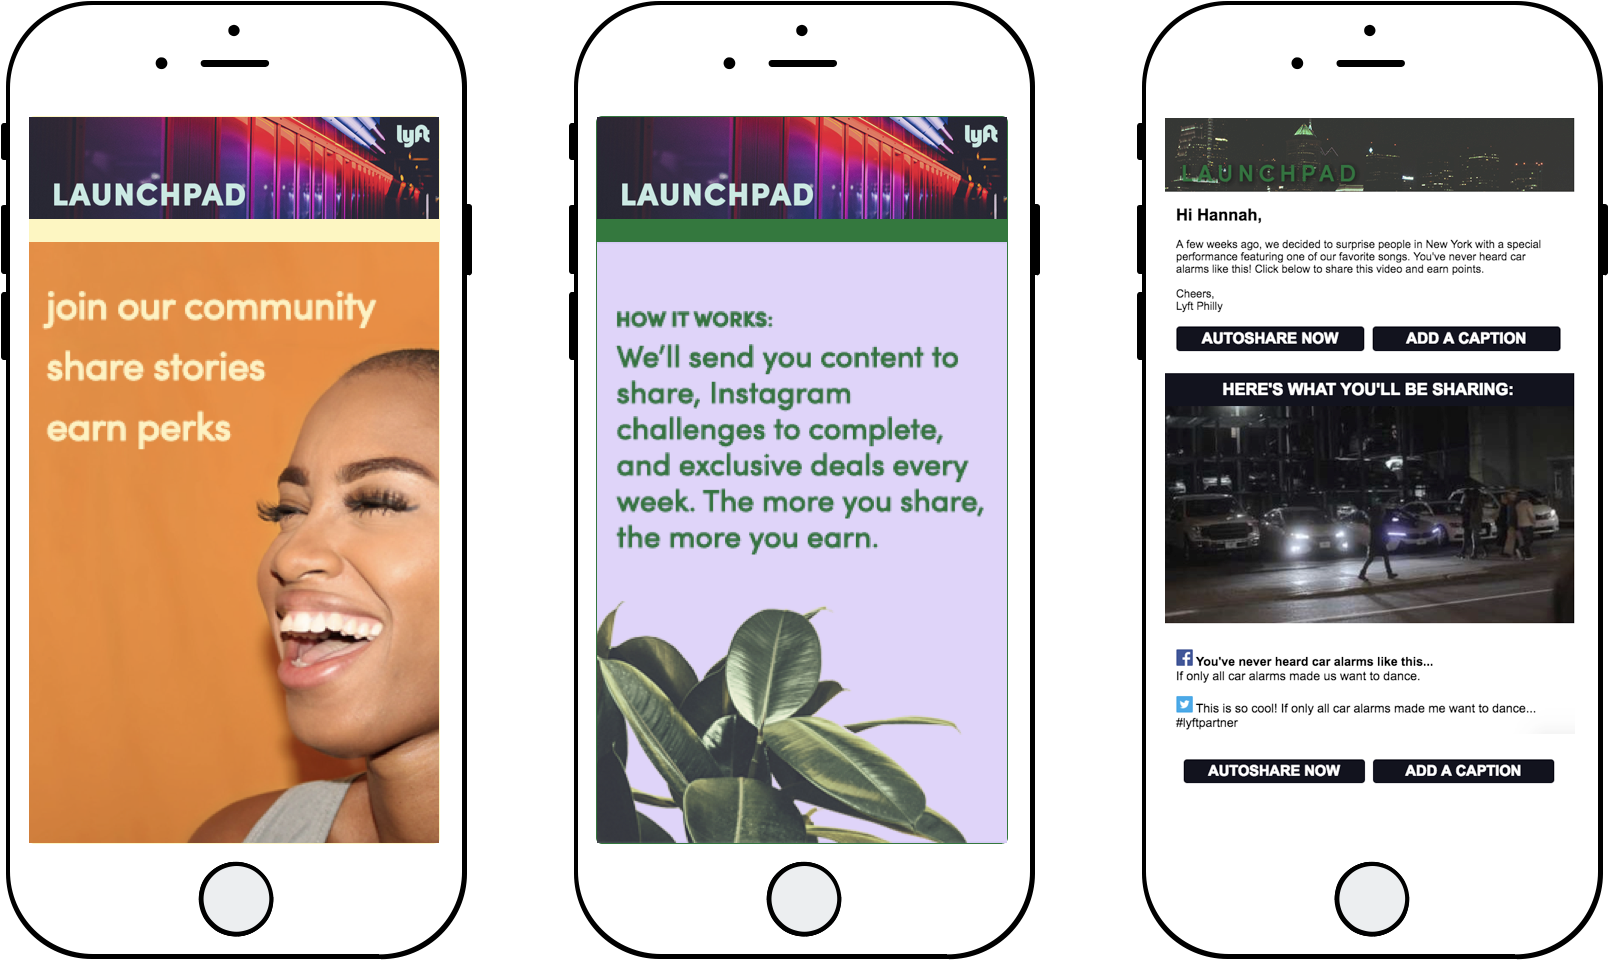 Two mobile screens depicting the Launchpad platform and one depicting an email from Launchpad.